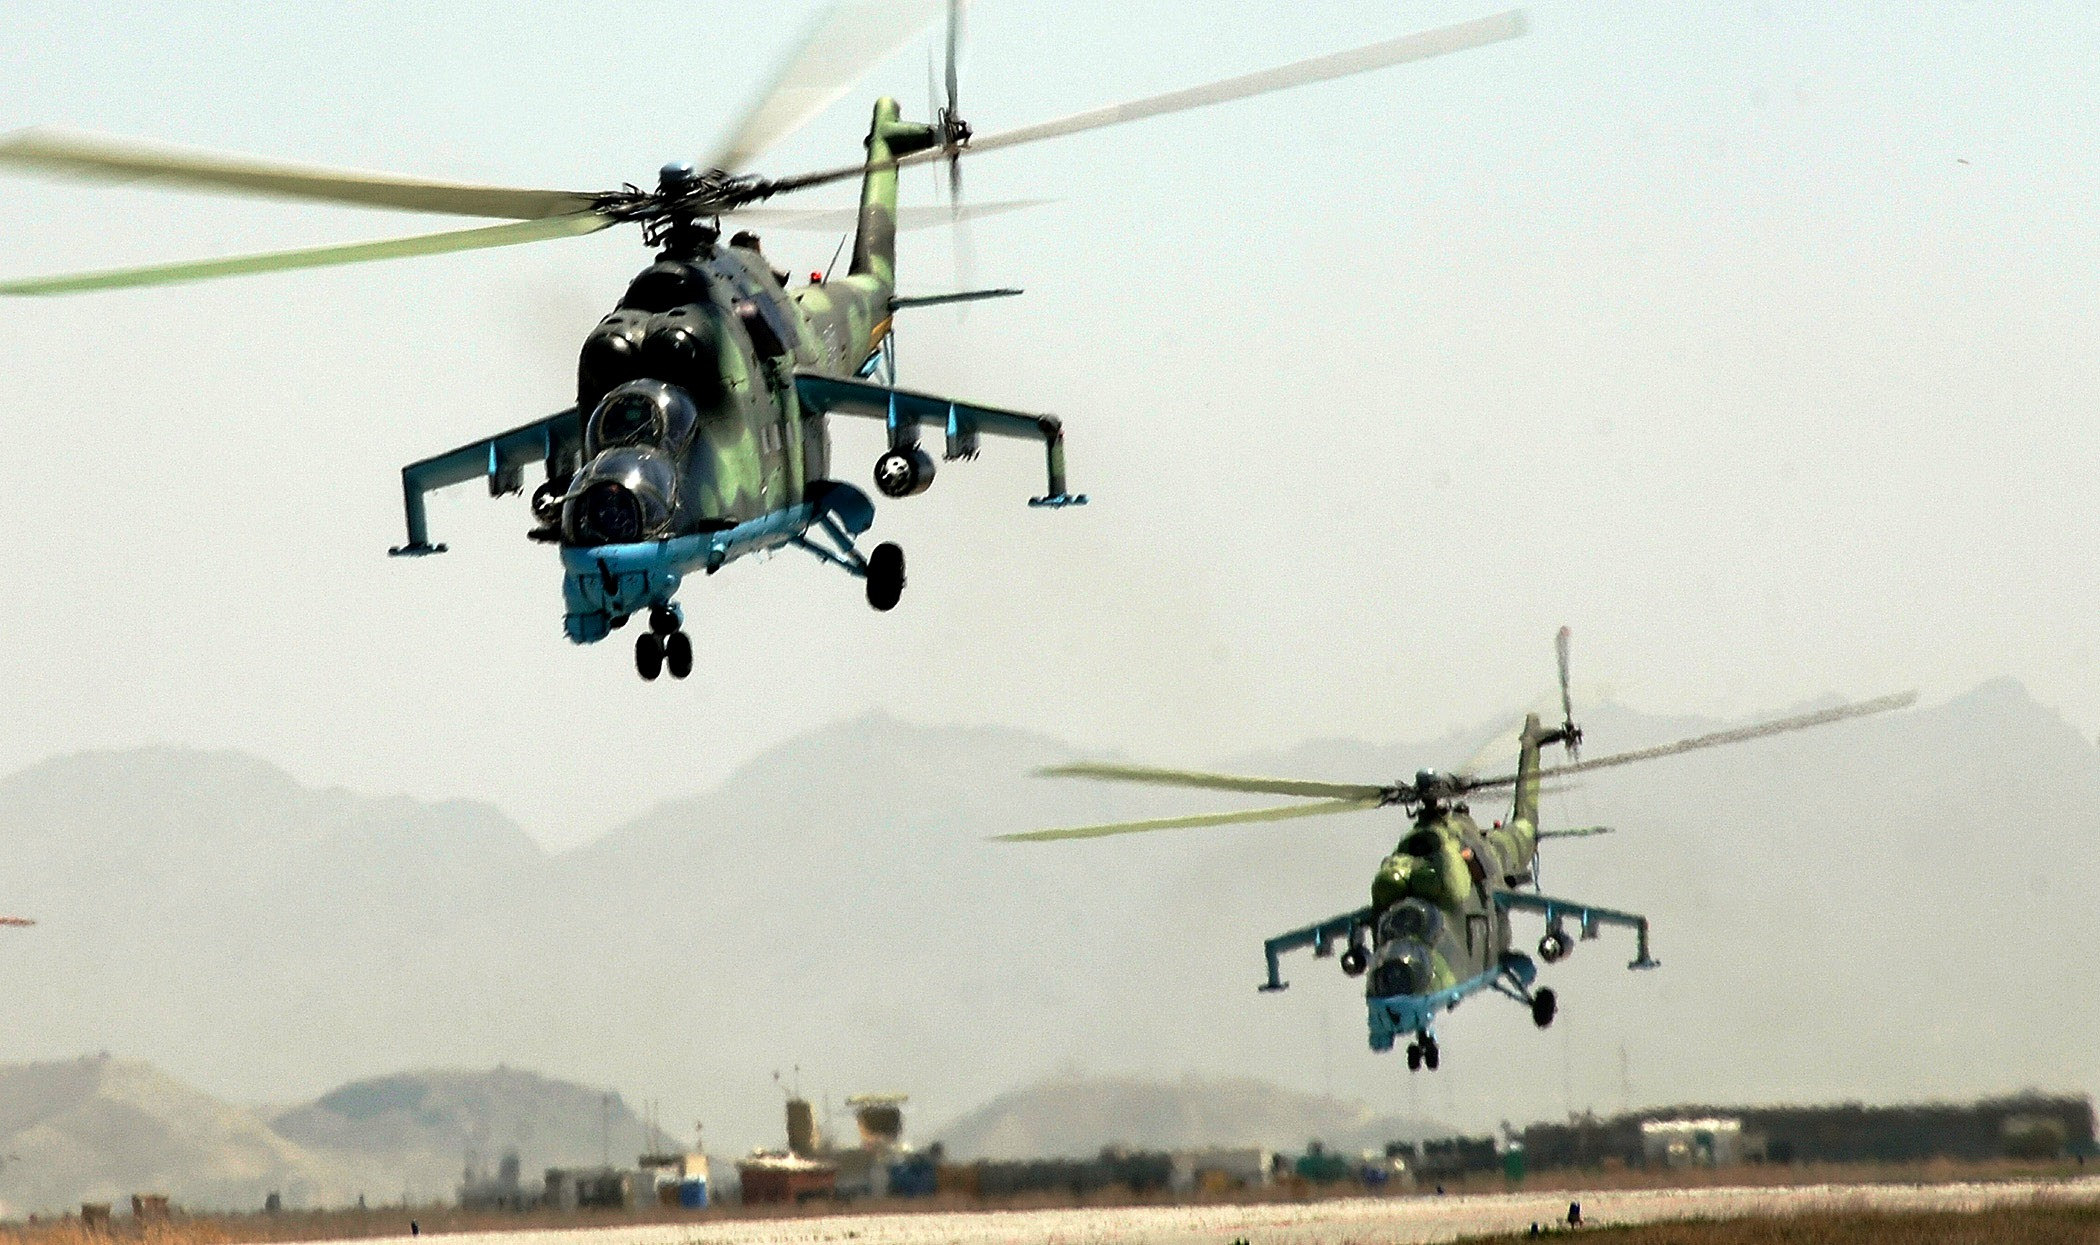 Kabul, Afghanistan -- Afghan National Air Corp MI-35 helicopters take off in a formation practice for the aerial parade in the upcoming Afghan National Day in Kabul. Air Force mentors assigned to Defense Reform Directorate Air Division under Combined Security Transition Command - Afghanistan provide guidance to soldiers with the Maintenance Operations Group for the ANAC. (U.S. Air Force photo by Tech. Sgt. Cecilio M. Ricardo Jr.)